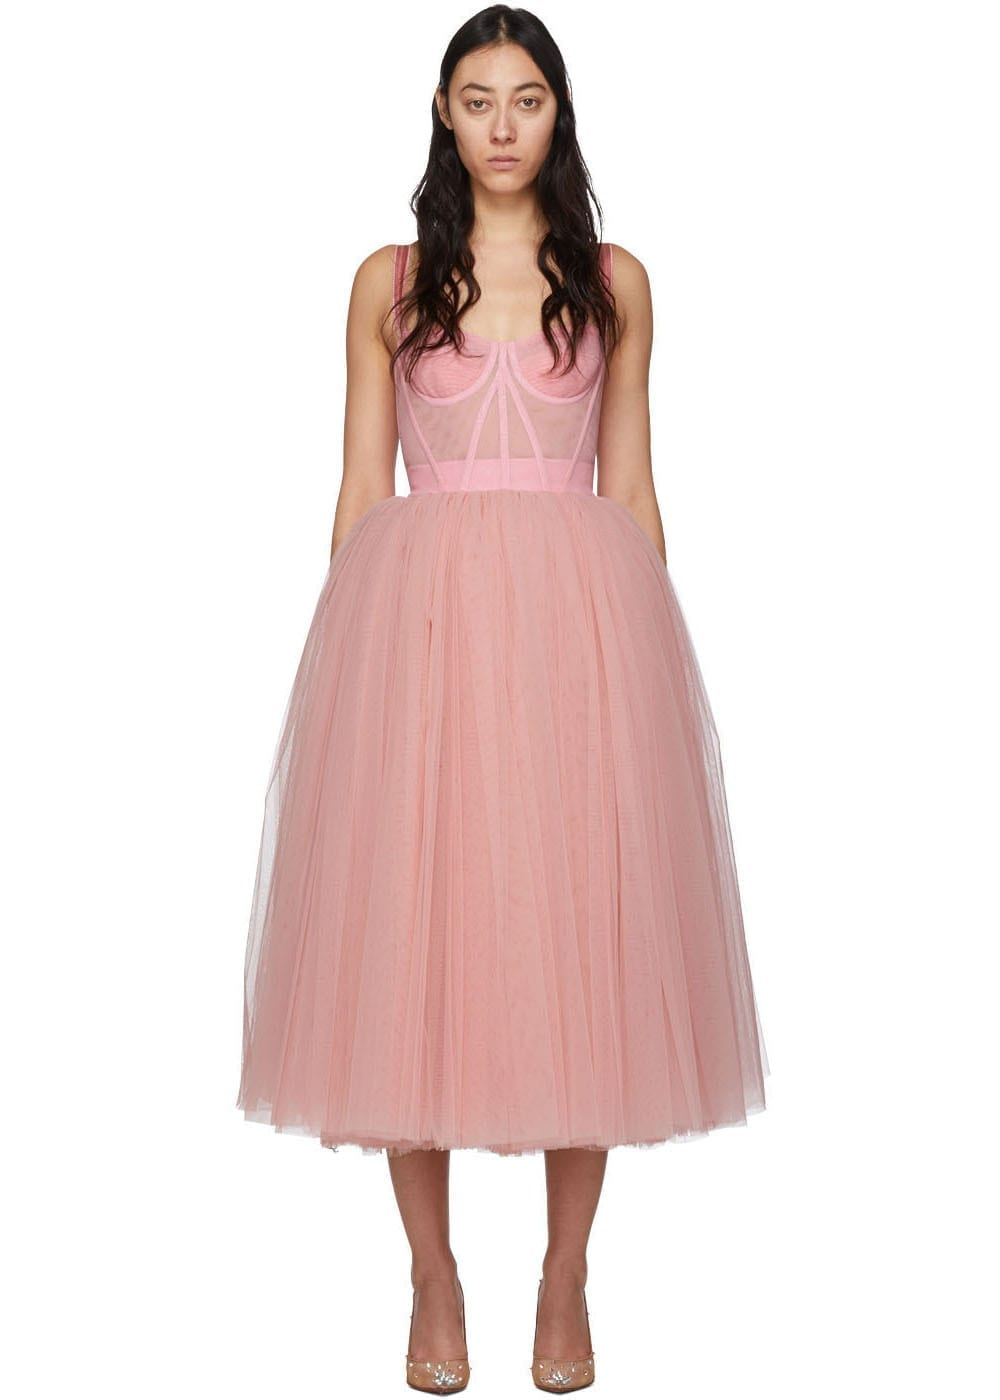 DOLCE & GABBANA Pink Tulle Bustier Dress